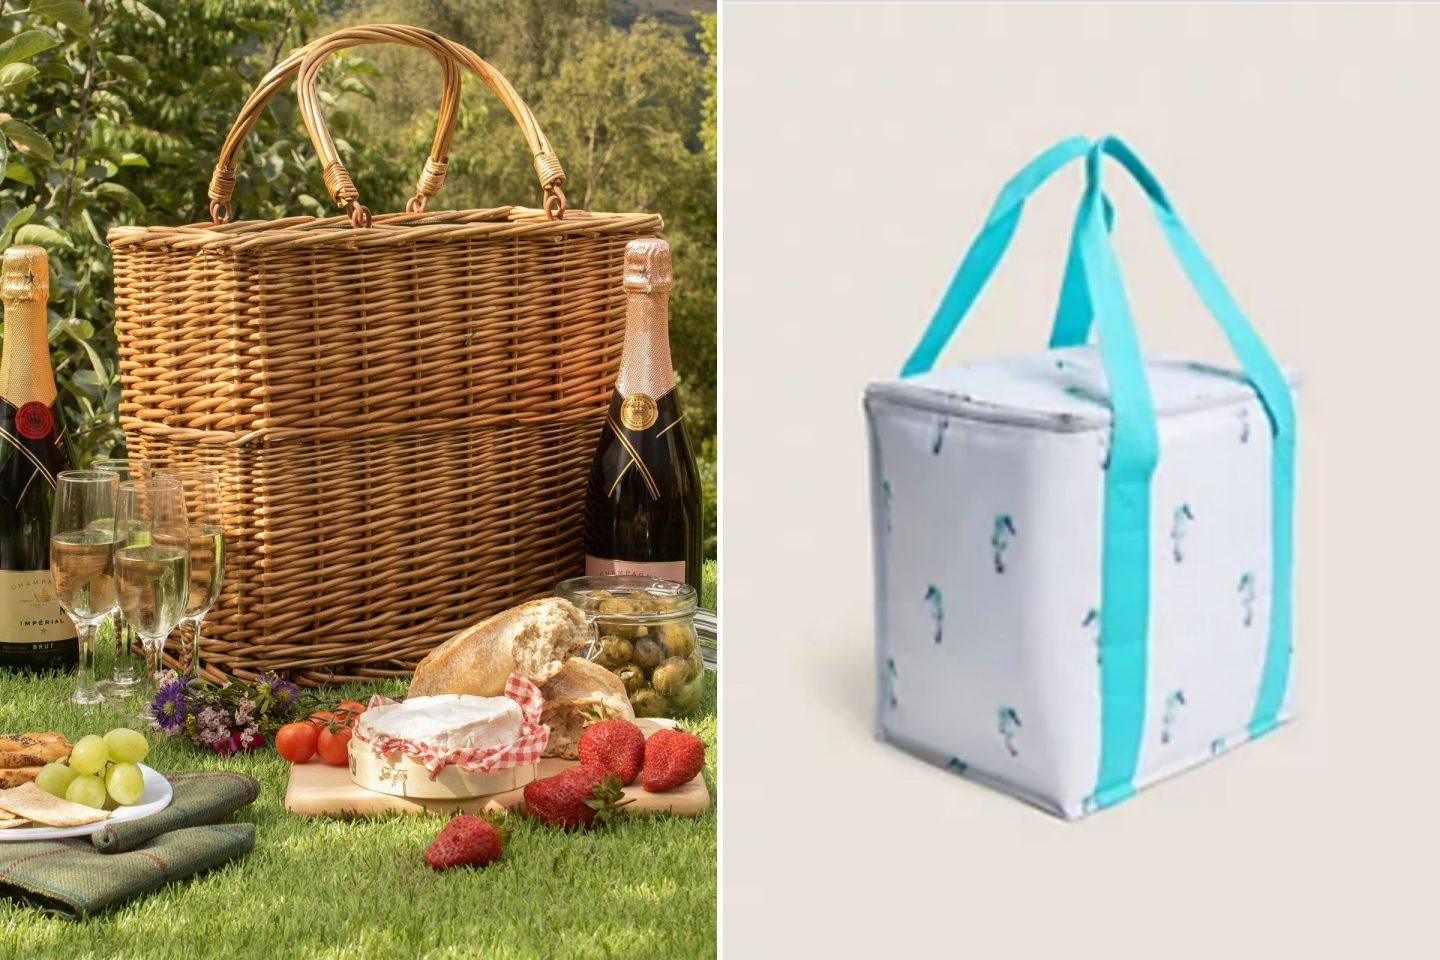 A list of summer picnic essentials to ensure you are always ready for that last minute picnic and have everything you need. For more ideas check out www.northamptonshiremumsandkids.co.uk